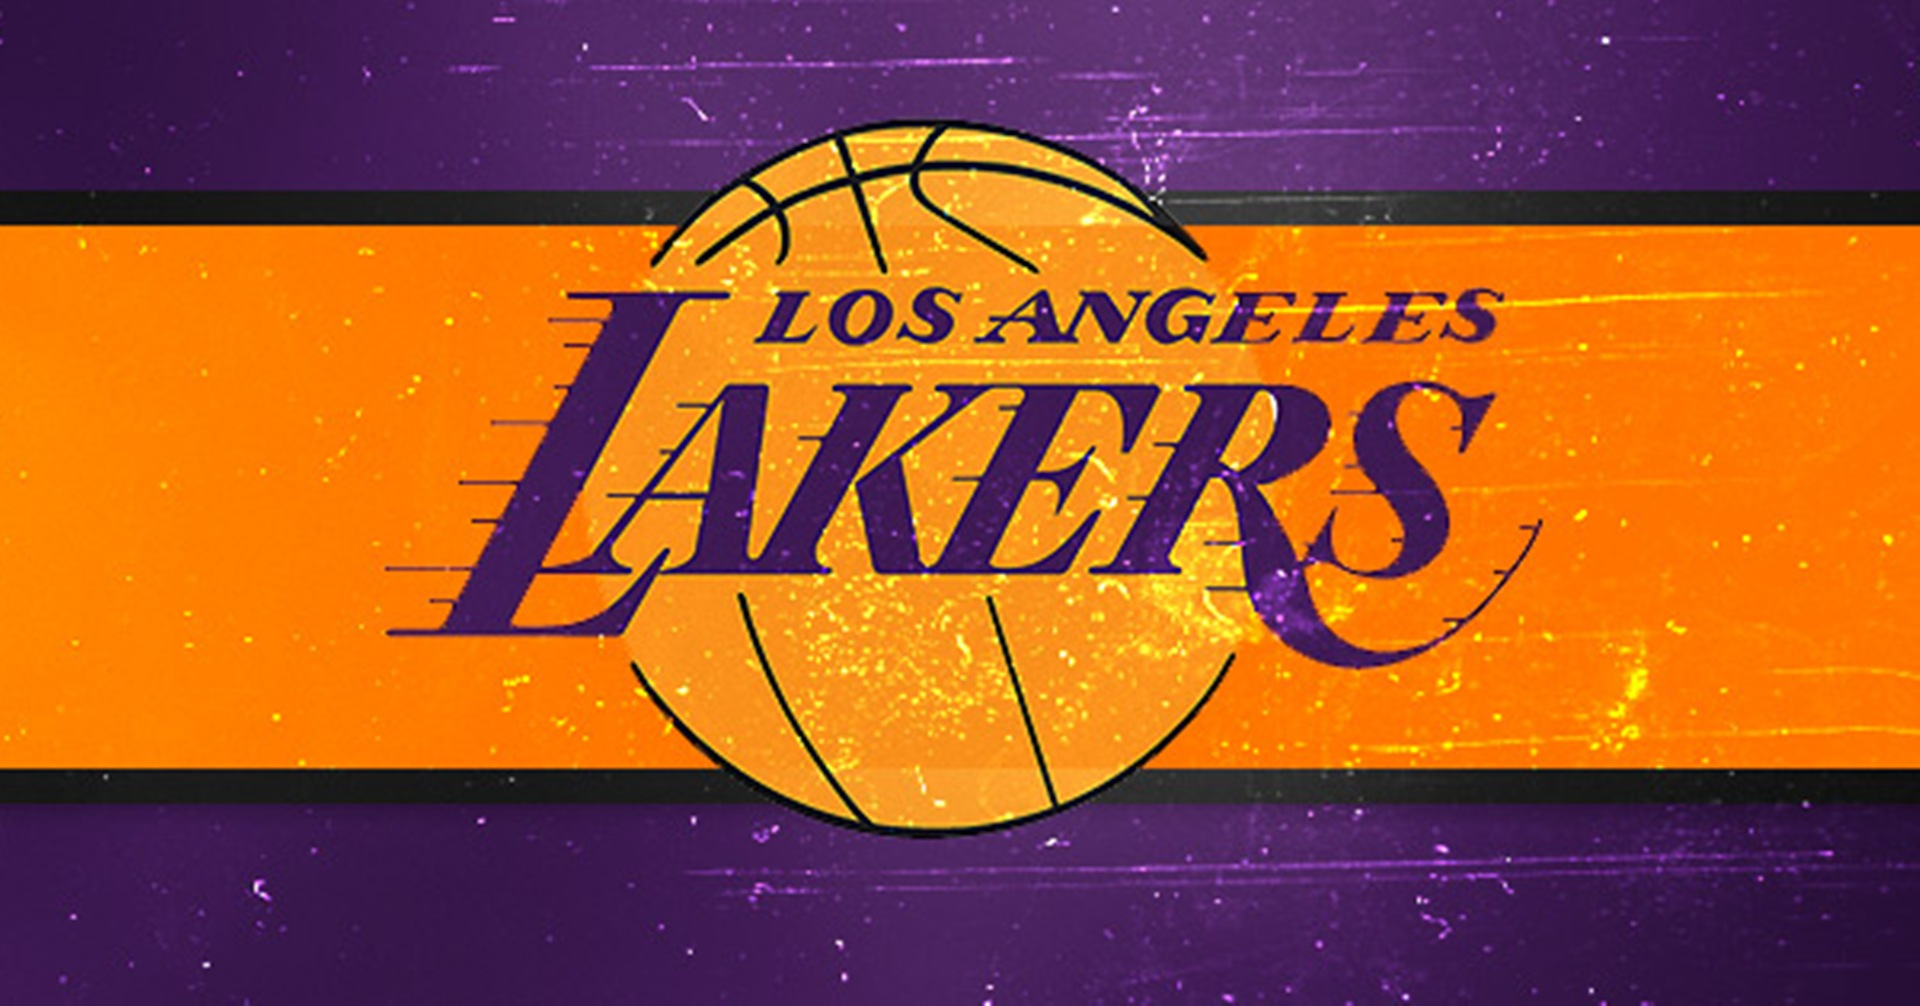 lakers wallpaper hd purple